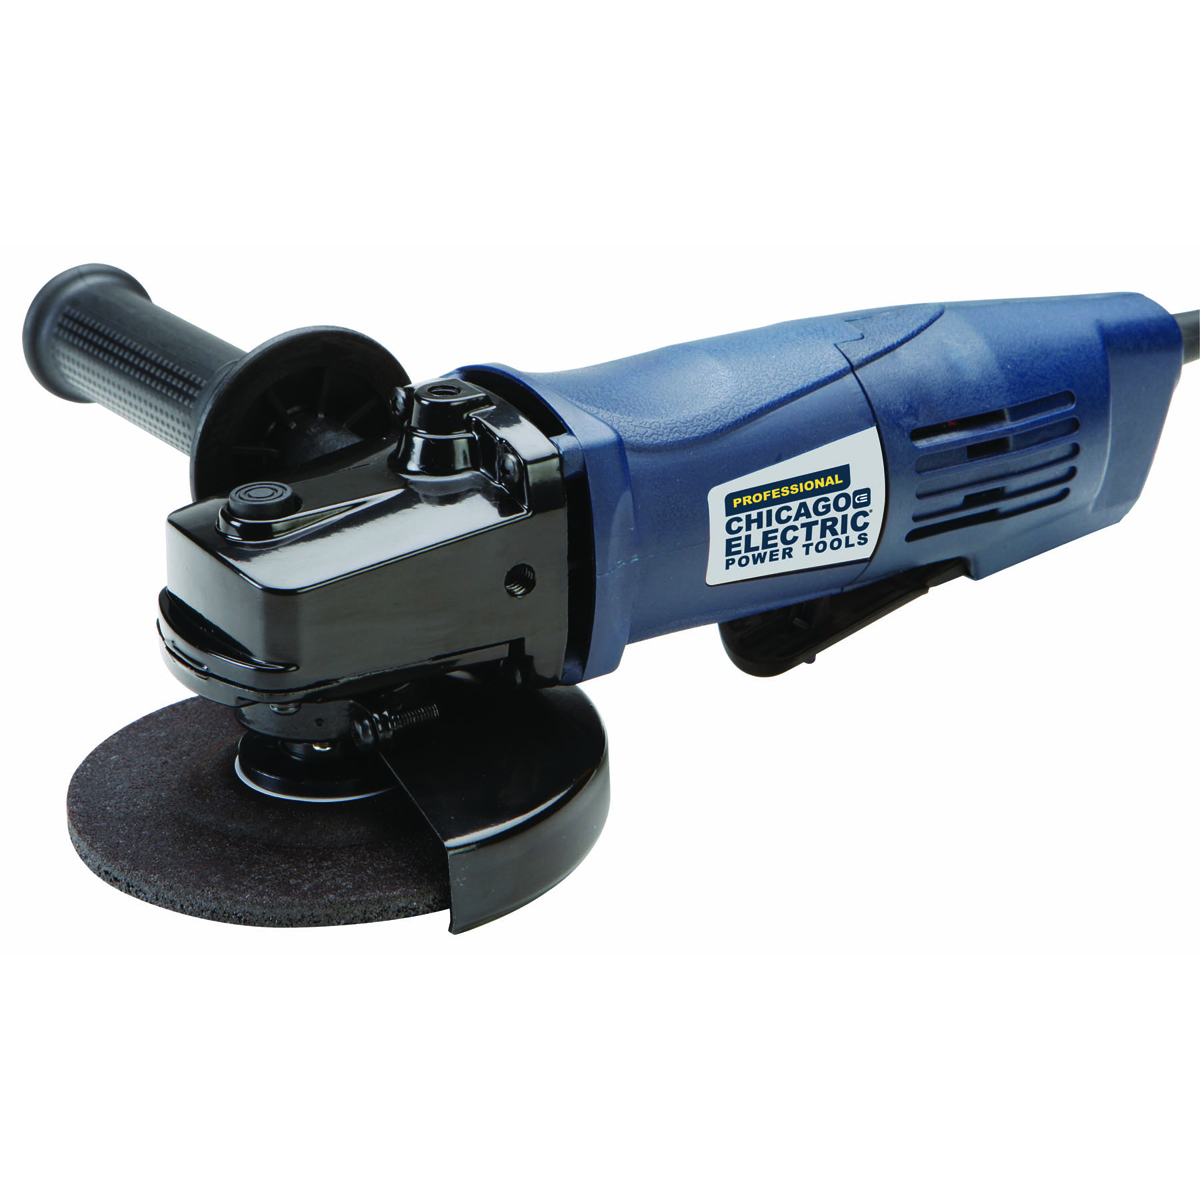 Whats My Zipcode >> 4-1/2 In. Angle Grinder with Paddle Switch